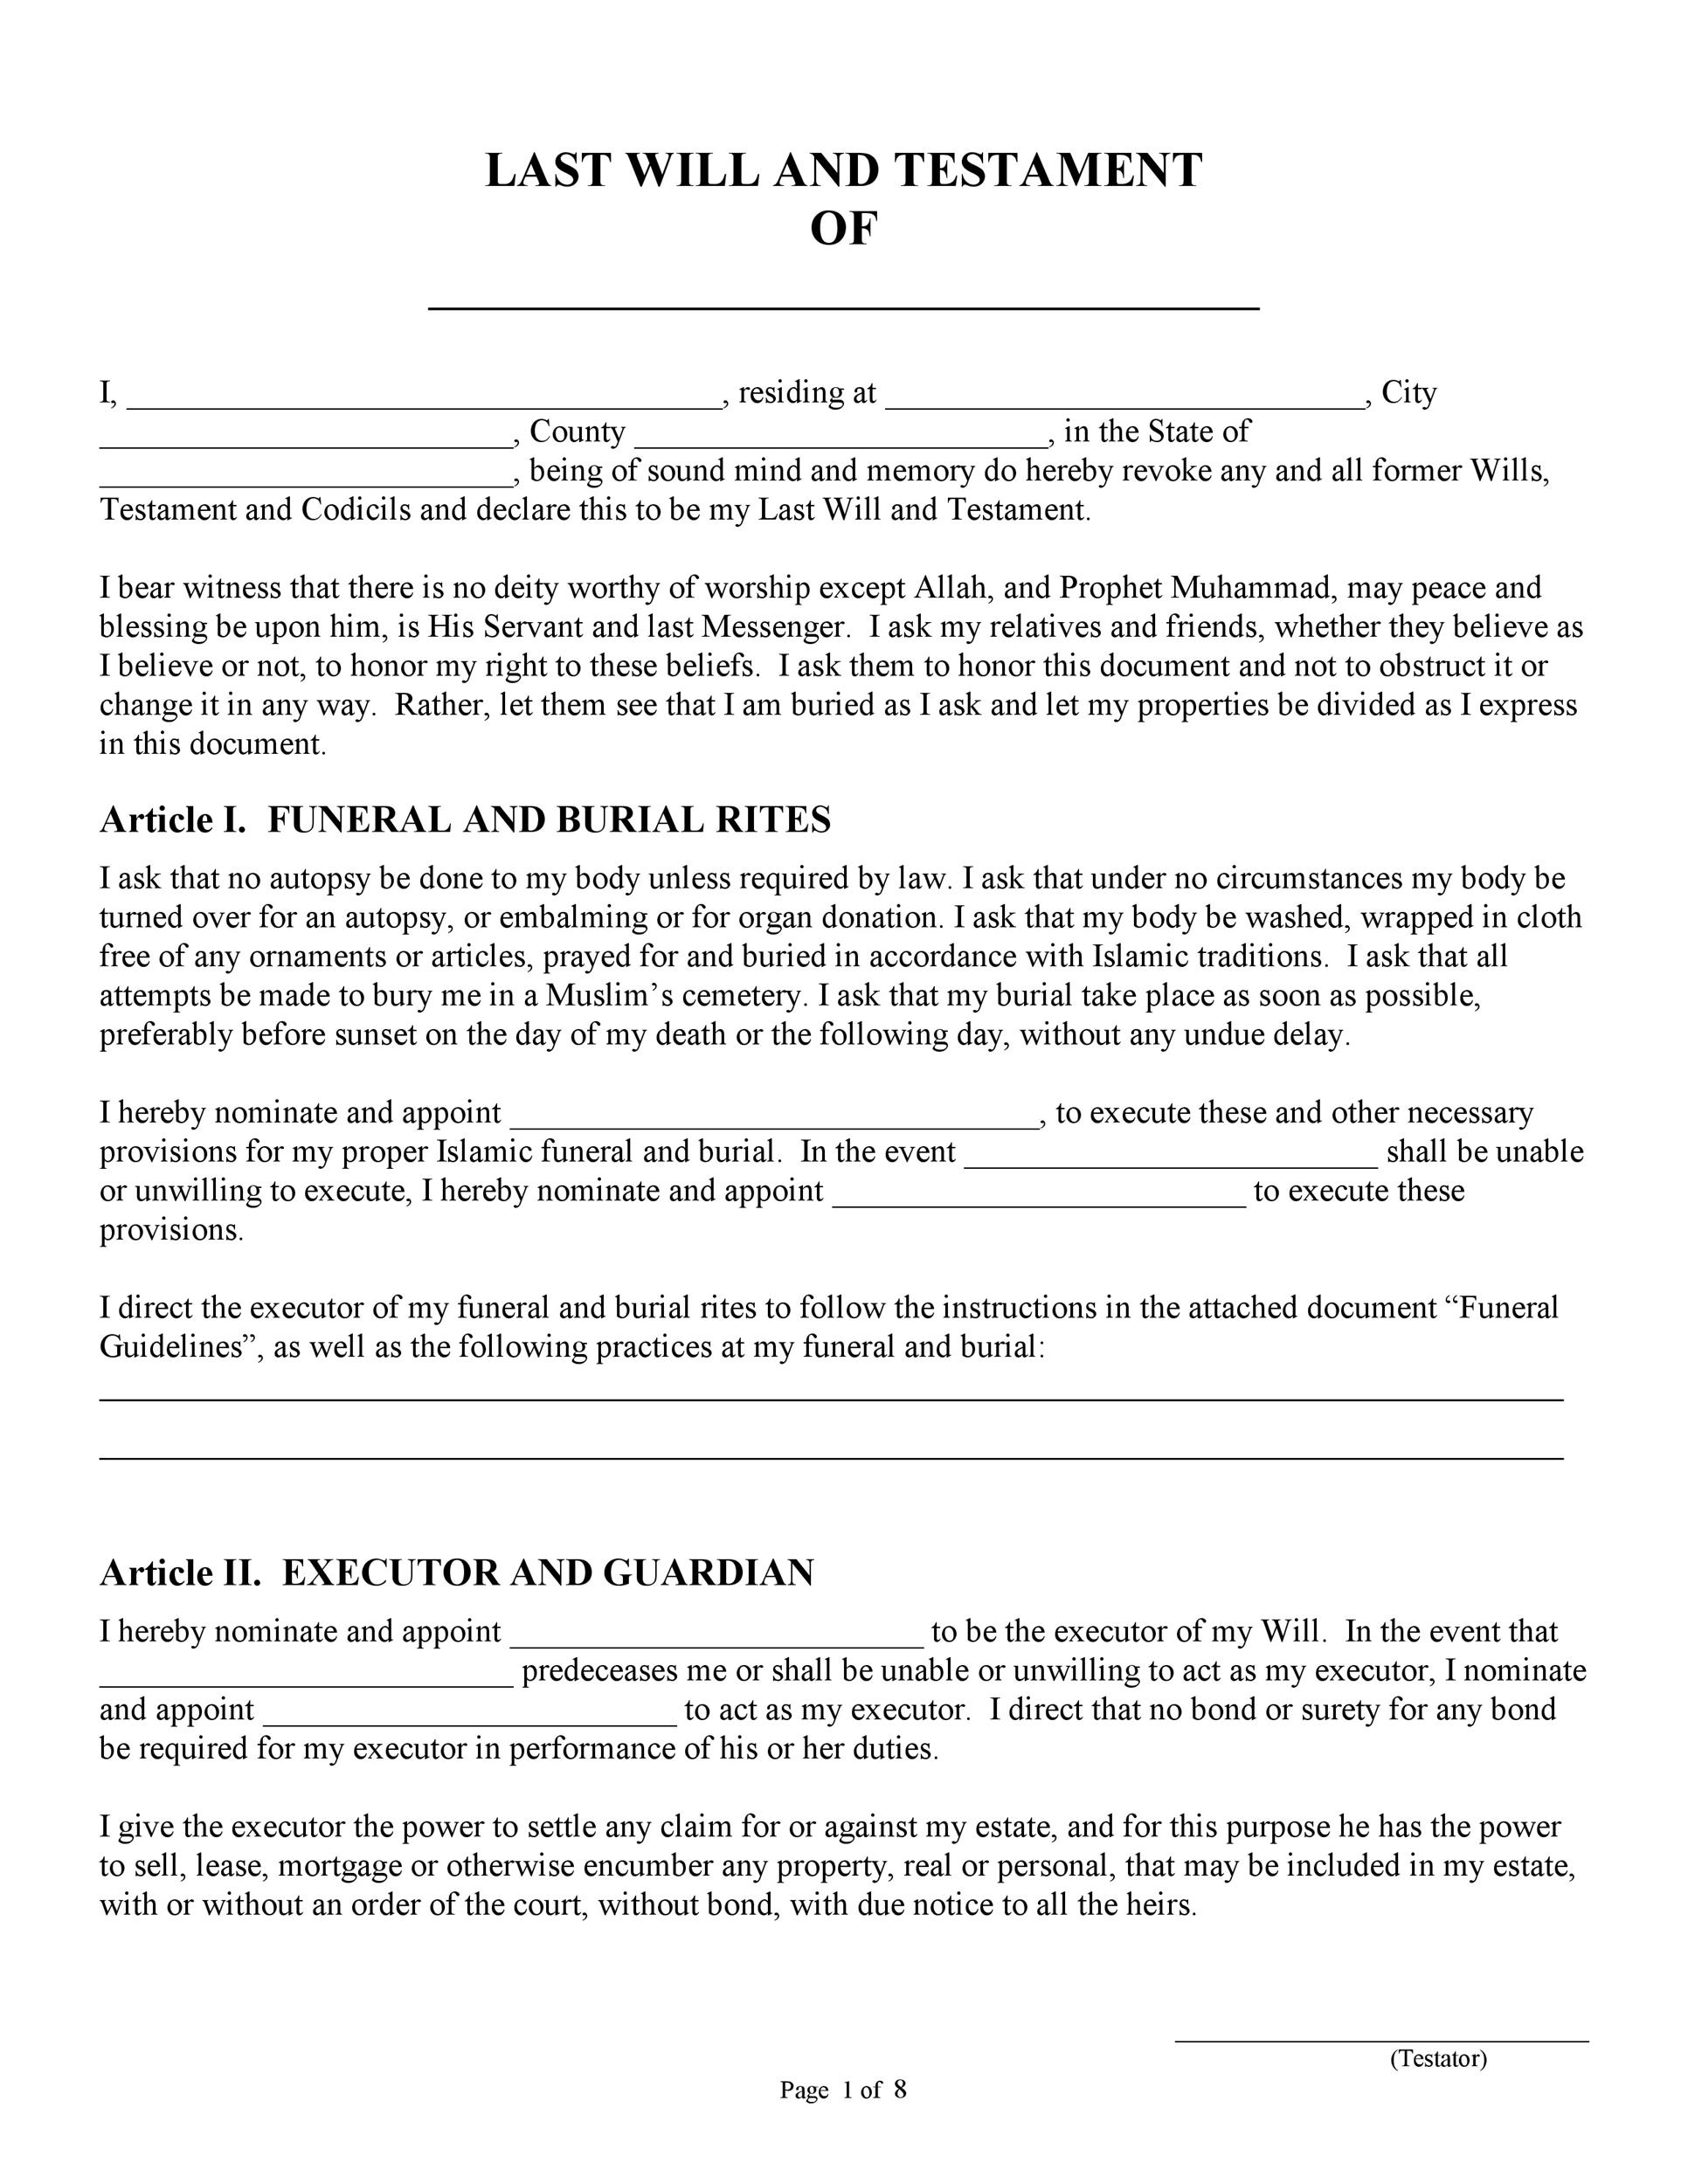 39 Last Will And Testament Forms Templates ᐅ Template Lab